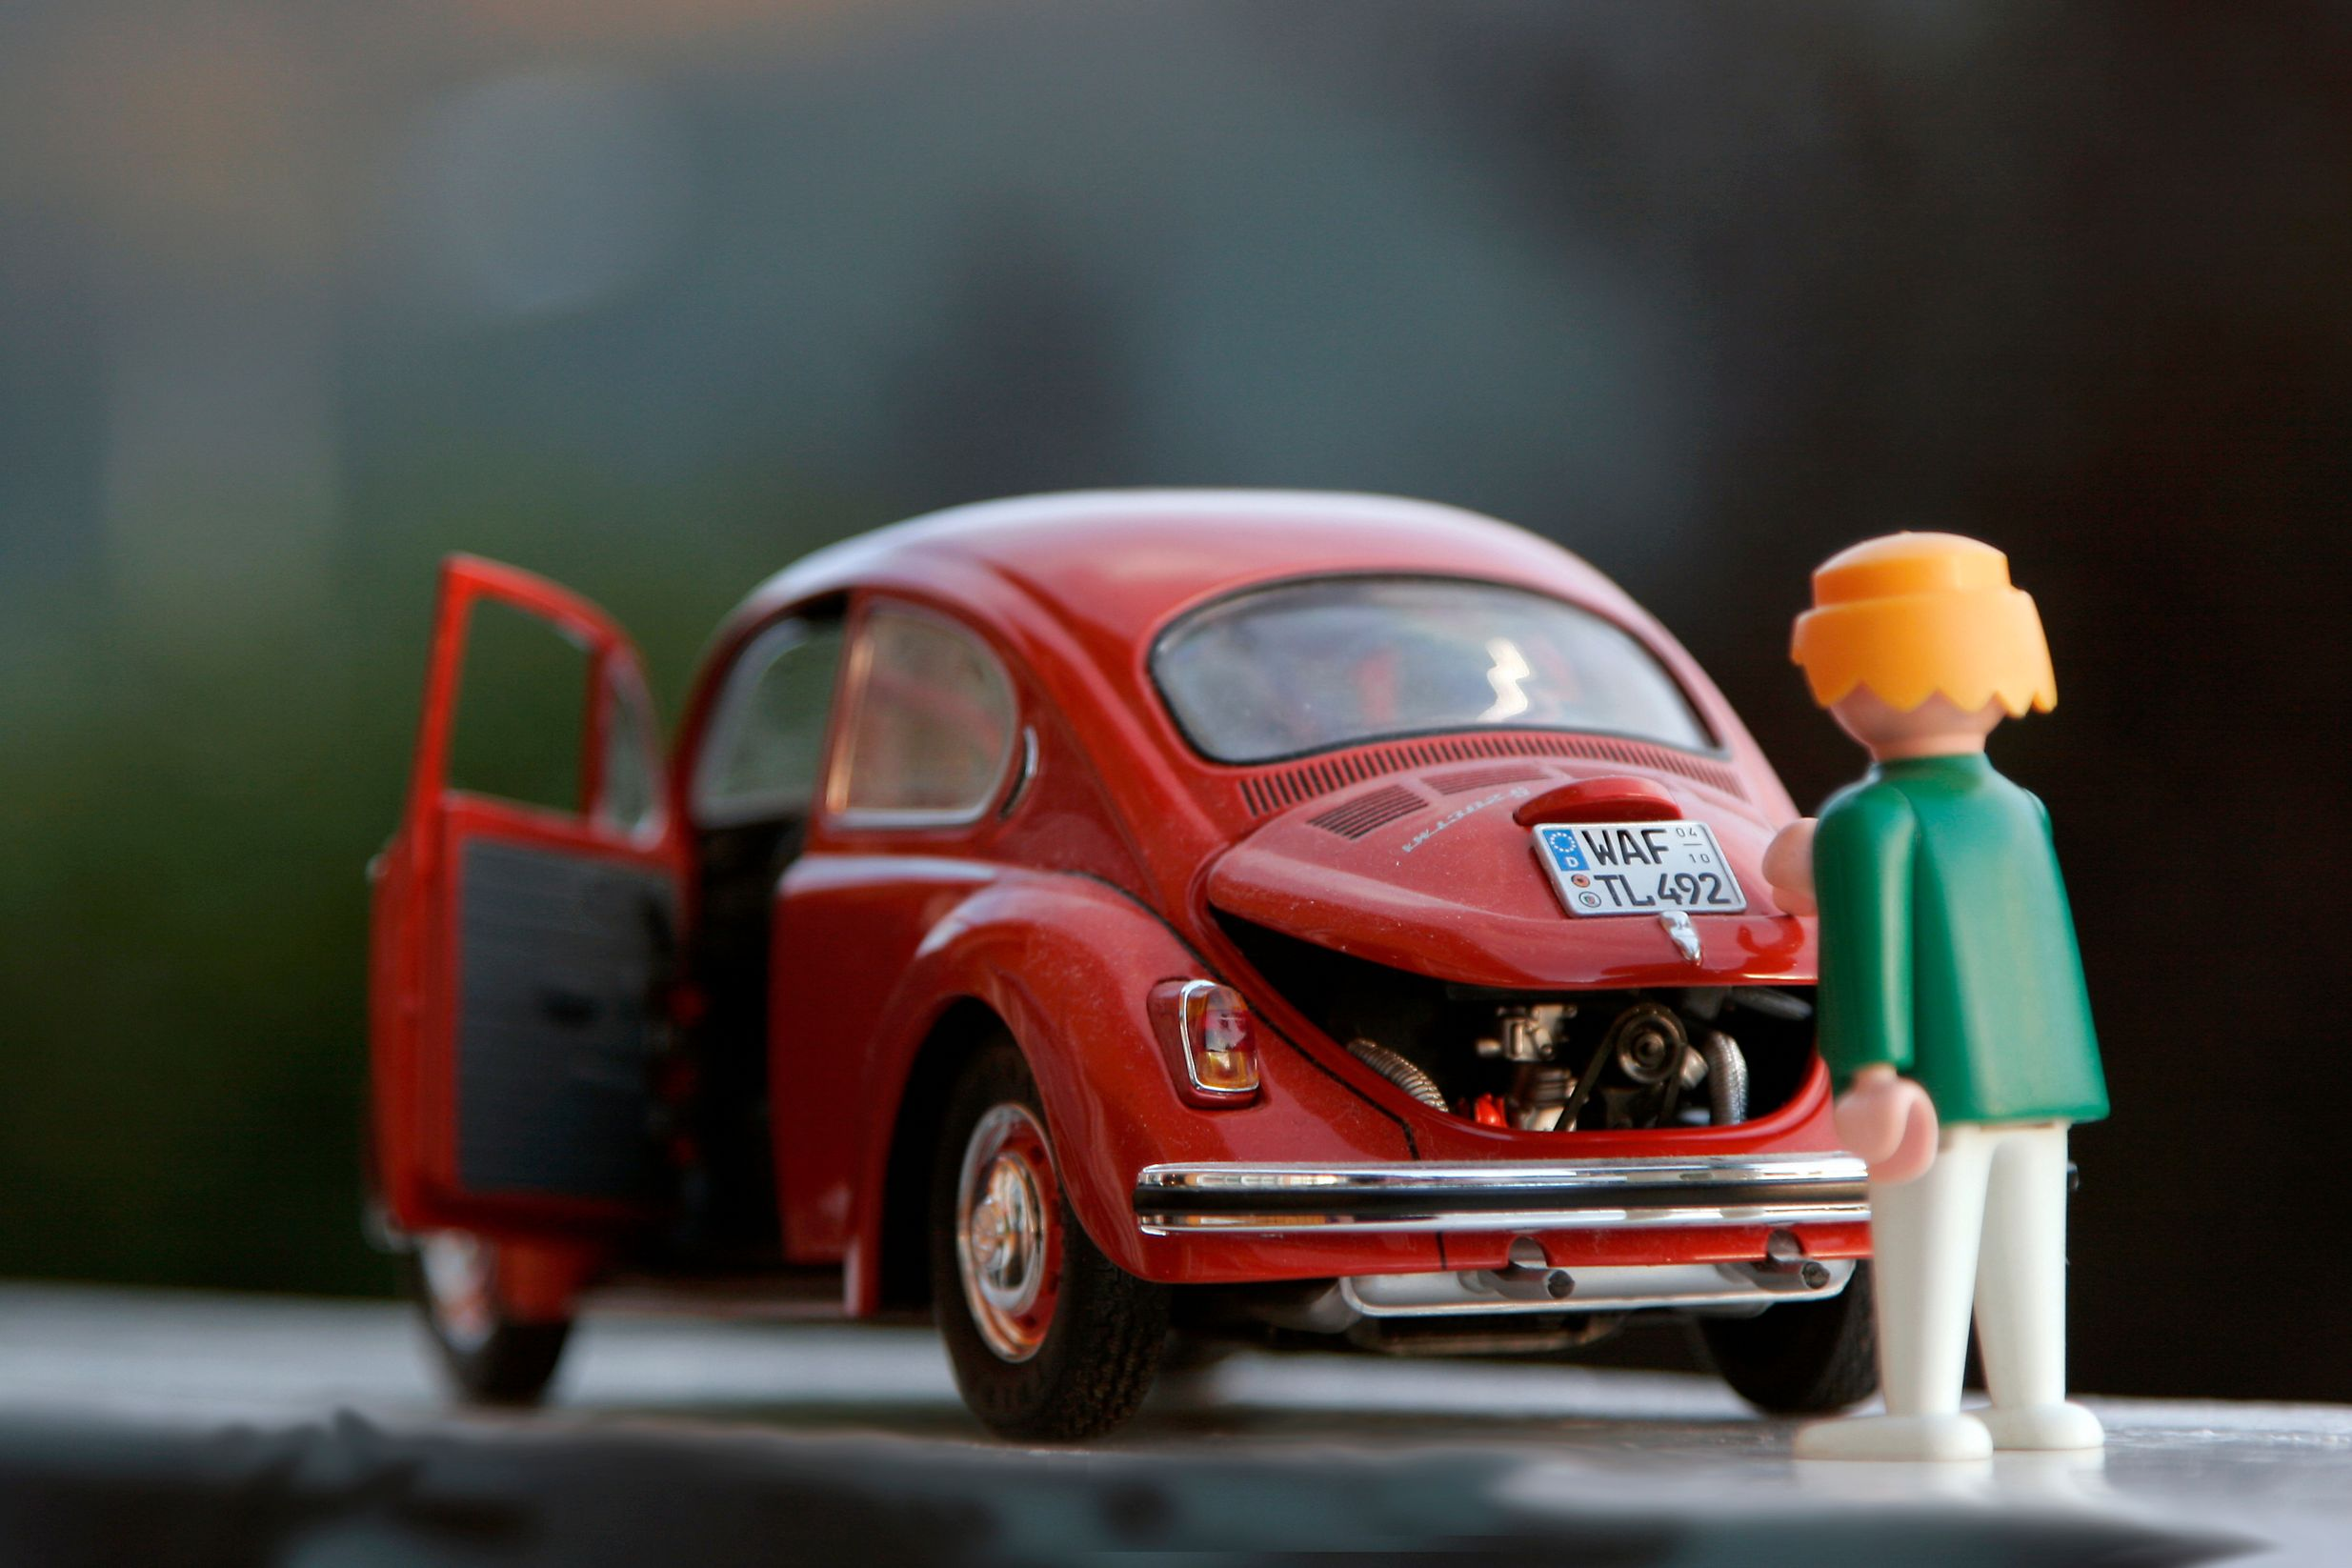 car figurine and toy closing toy car trunk before playing road trip games